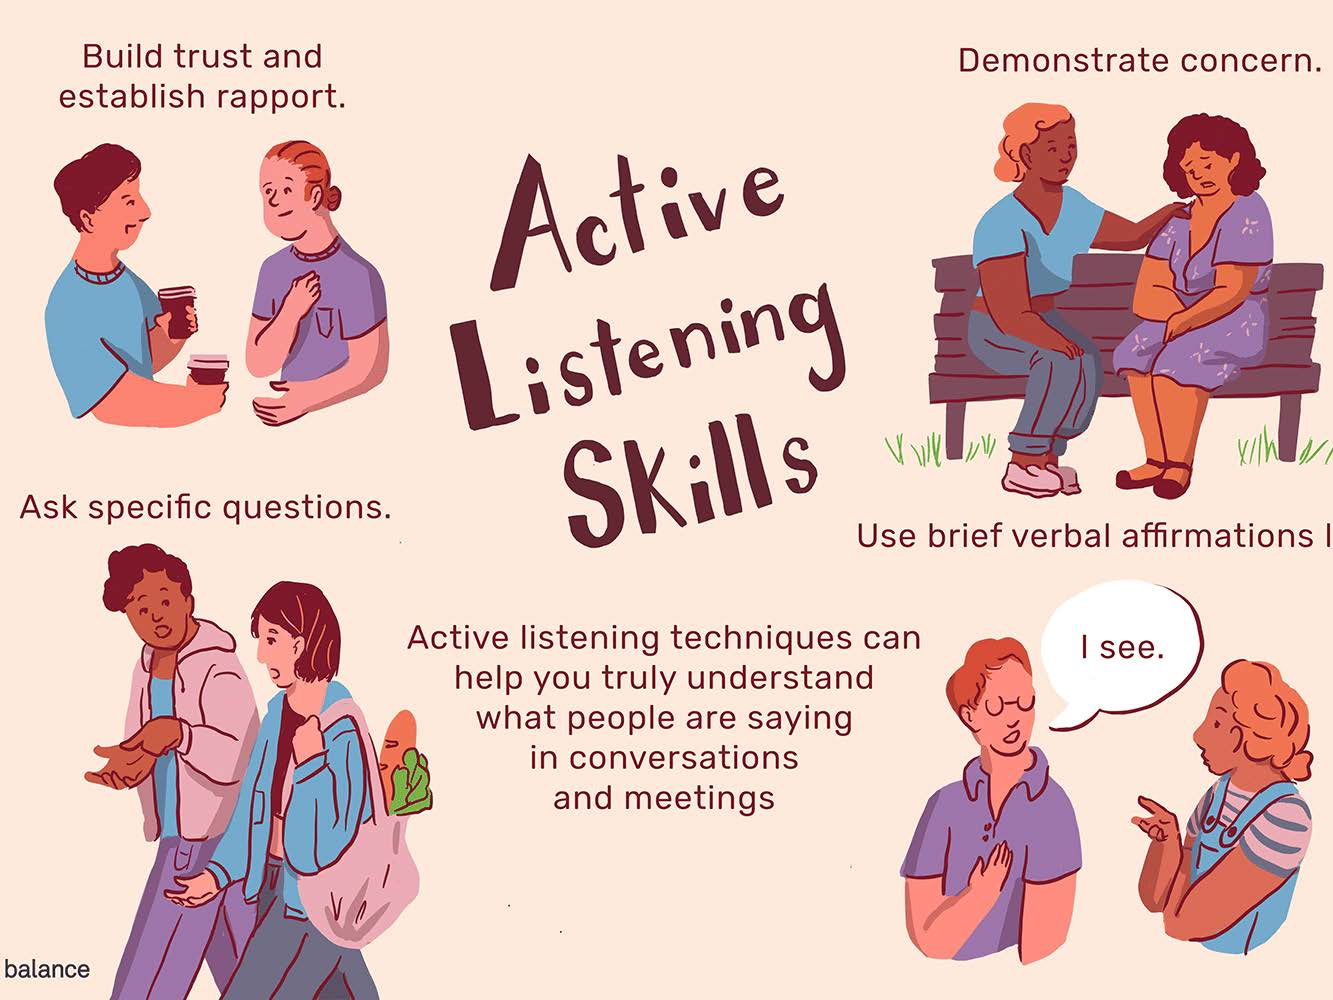 active-listening-skills-with-examples-2059684-finalv1-ct-8f9549d650aa46318b5d0351fdab9759.pdf